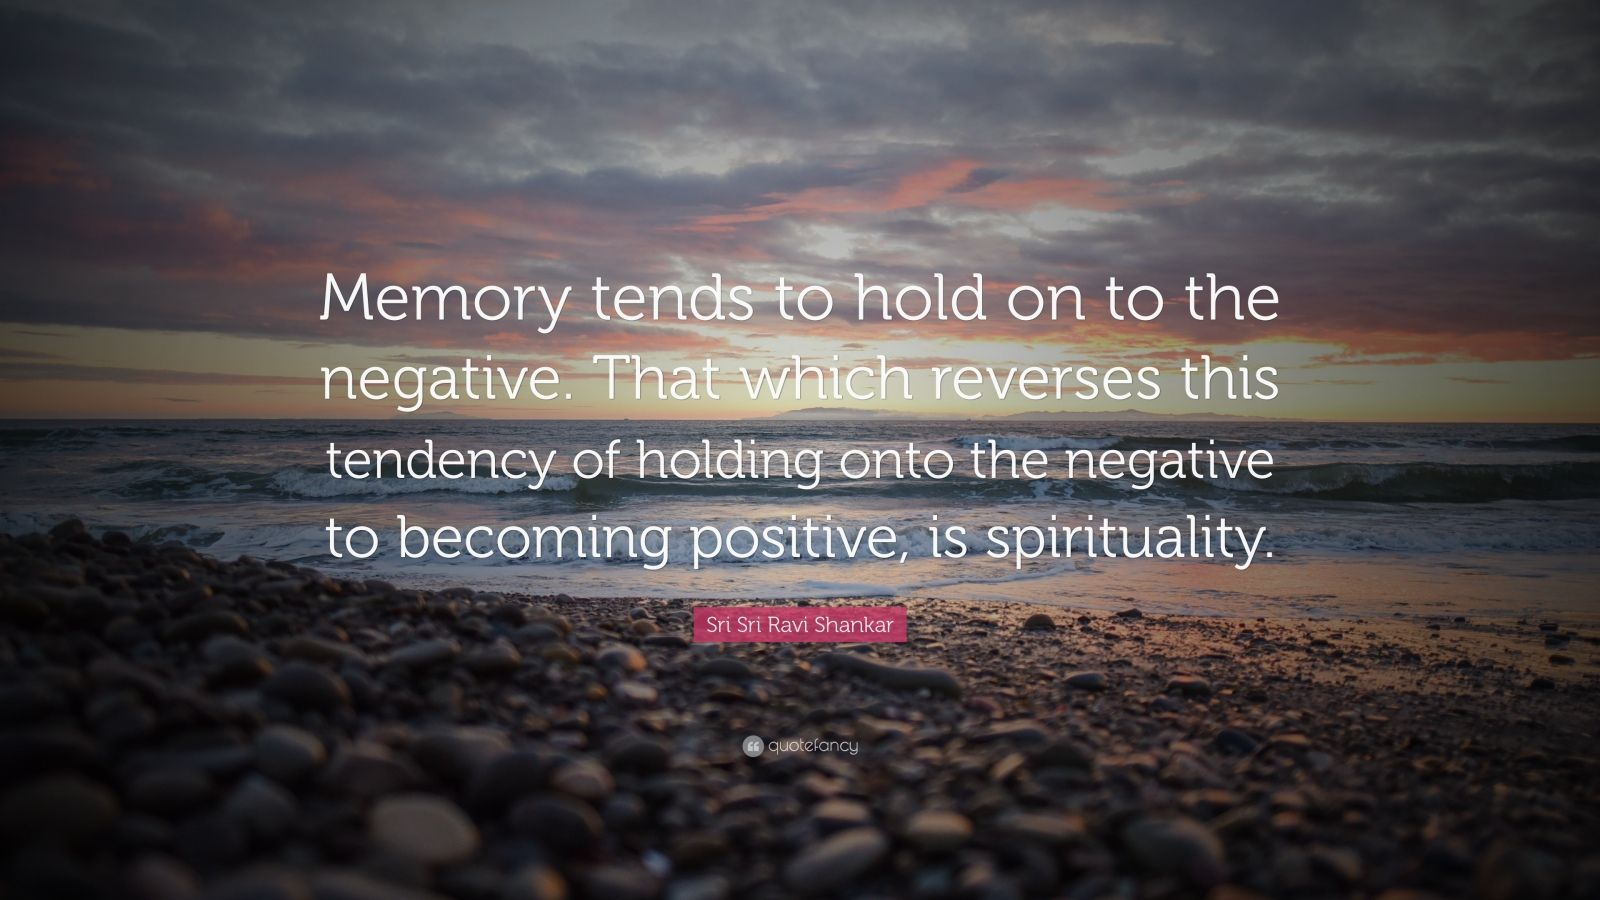 """Sri Sri Ravi Shankar Quote: """"Memory tends to hold on to the negative. That which reverses this tendency of holding onto the negative to becoming positive, is spirituality."""""""